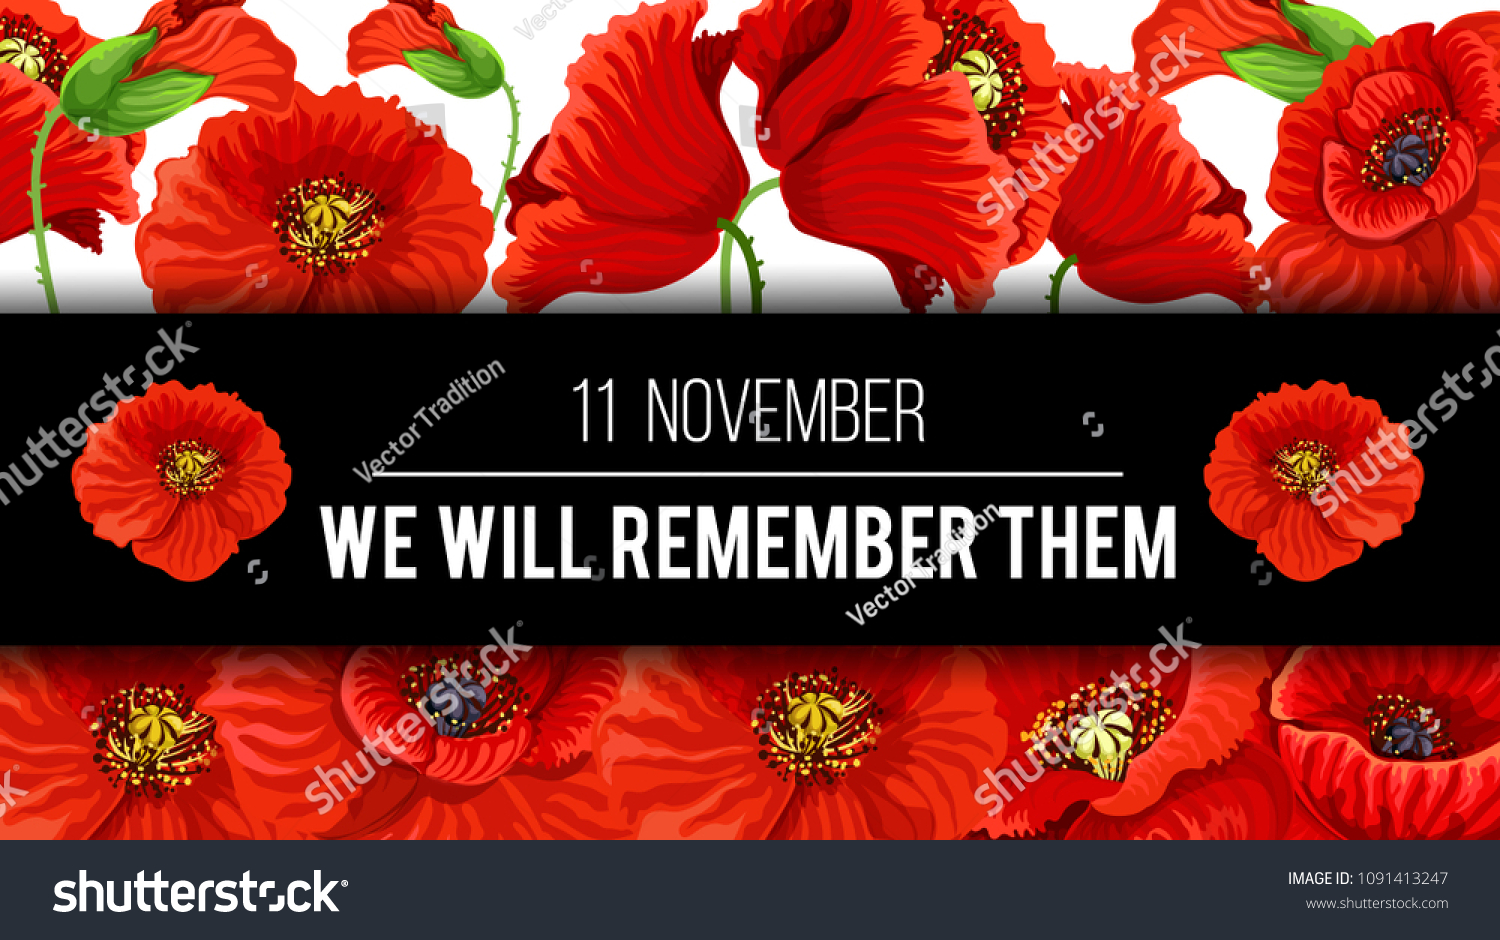 Remembrance day lest we forget 11 stock vector royalty free remembrance day lest we forget 11 november greeting banner or card of poppy flowers and quote mightylinksfo